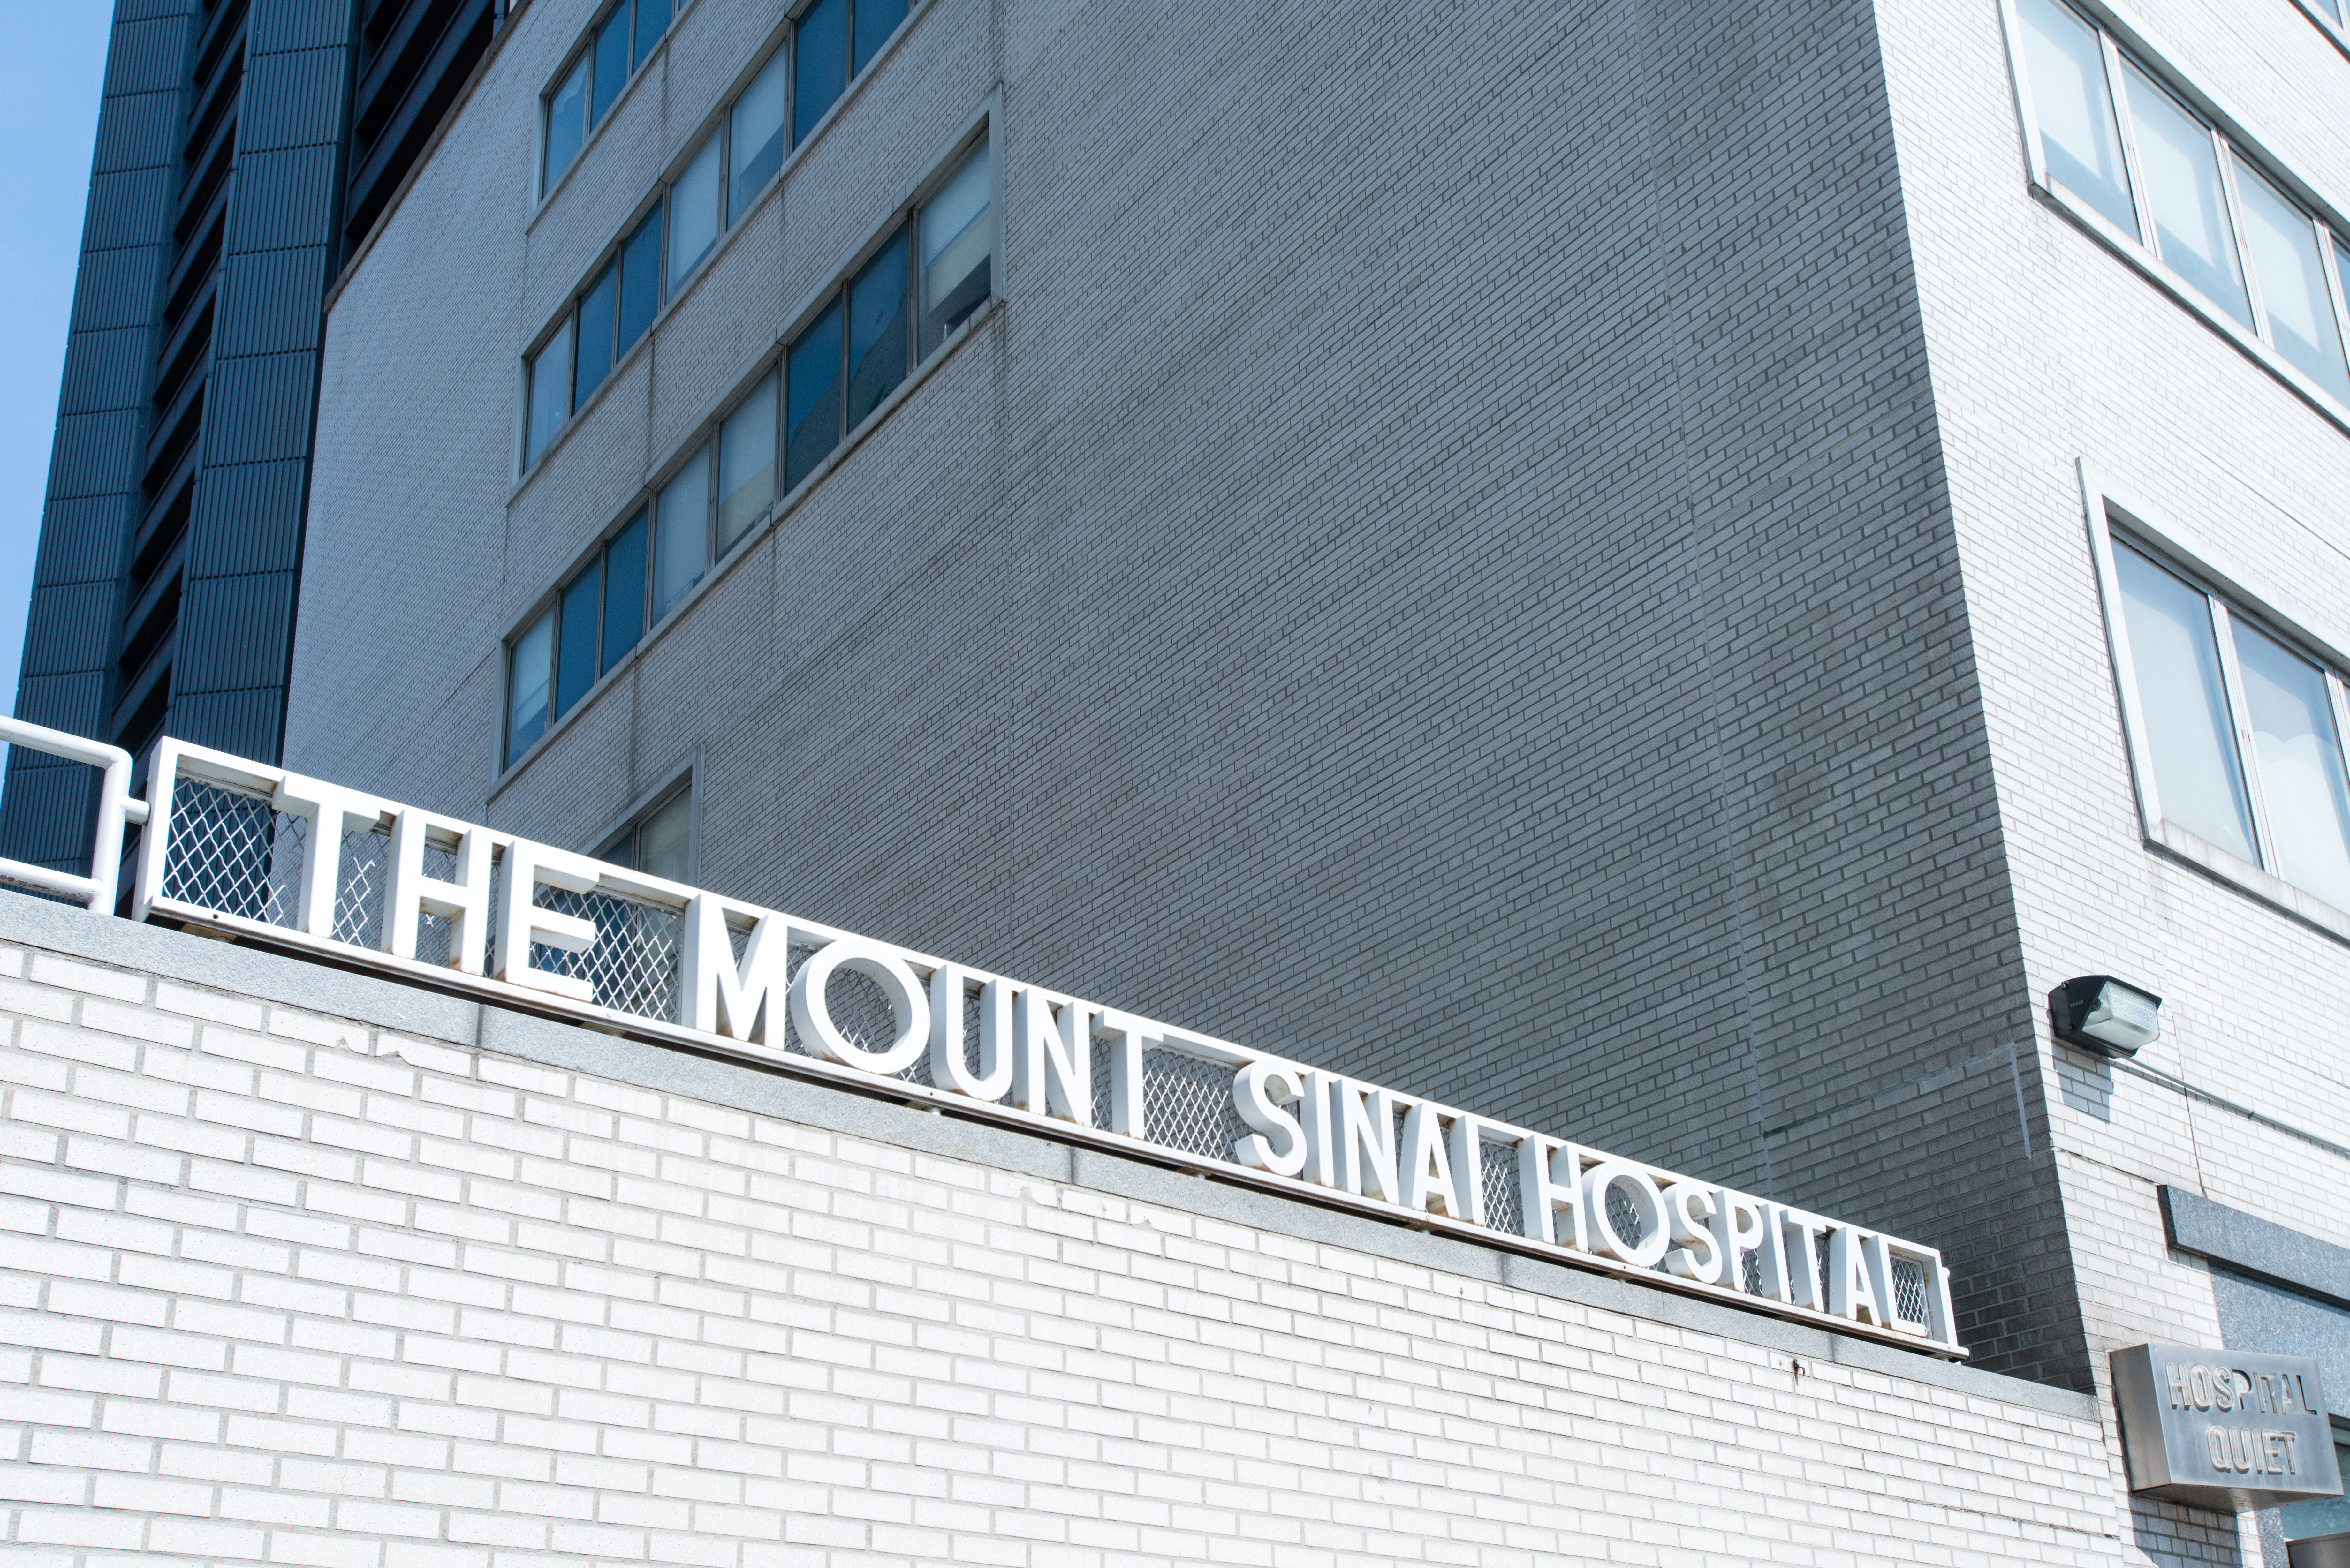 Mount Sinai Hospital in New York opened its geriatric emergency room in 2012 as part of a nationwide effort to find a better way to treat elderly patients. (Heidi de Marco/CHL)